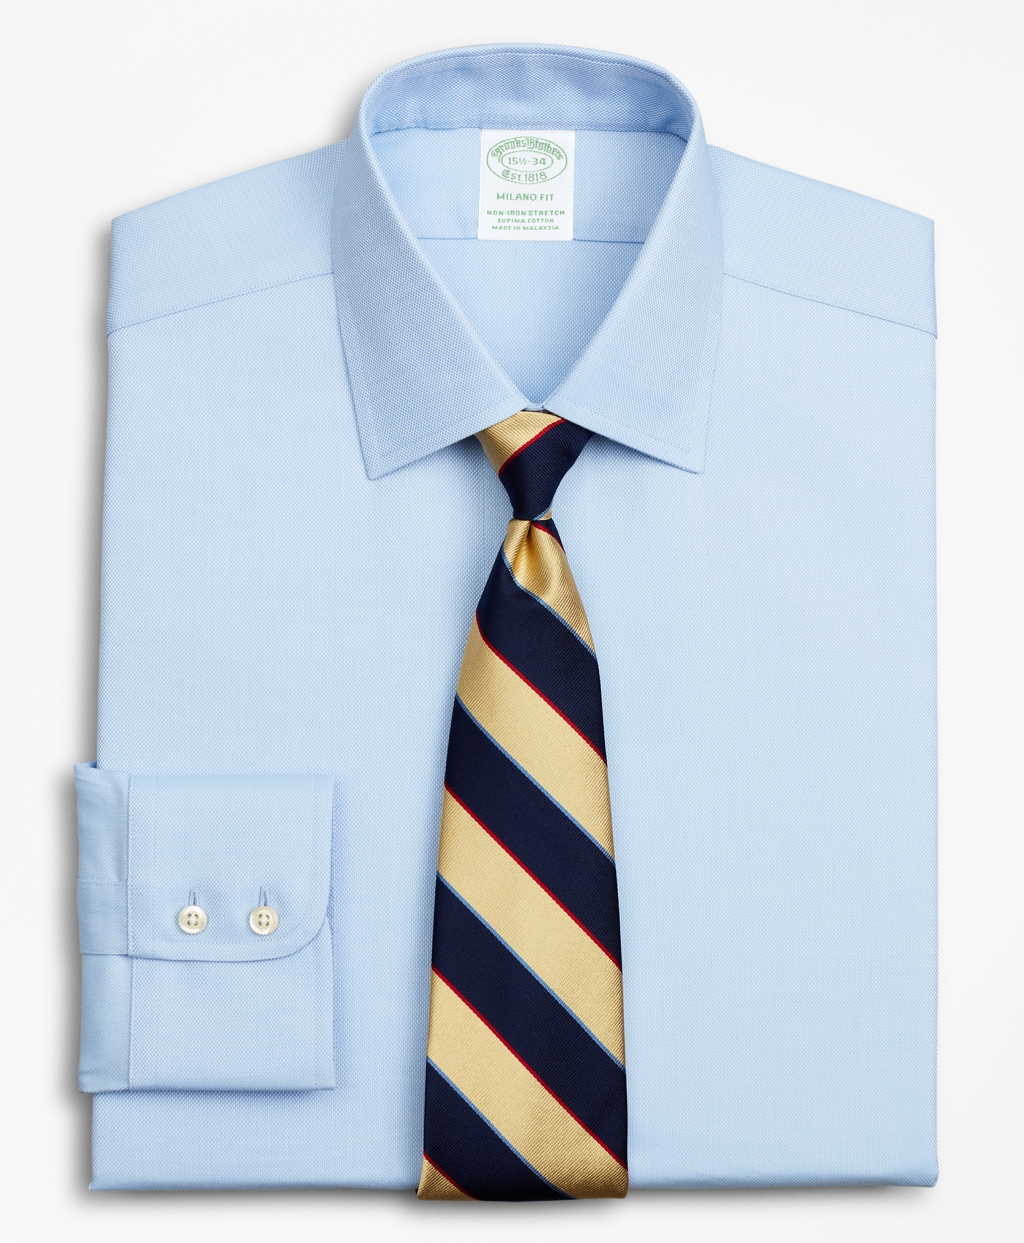 Brooksbrothers Stretch Milano Slim-Fit Dress Shirt, Non-Iron Royal Oxford Ainsley Collar